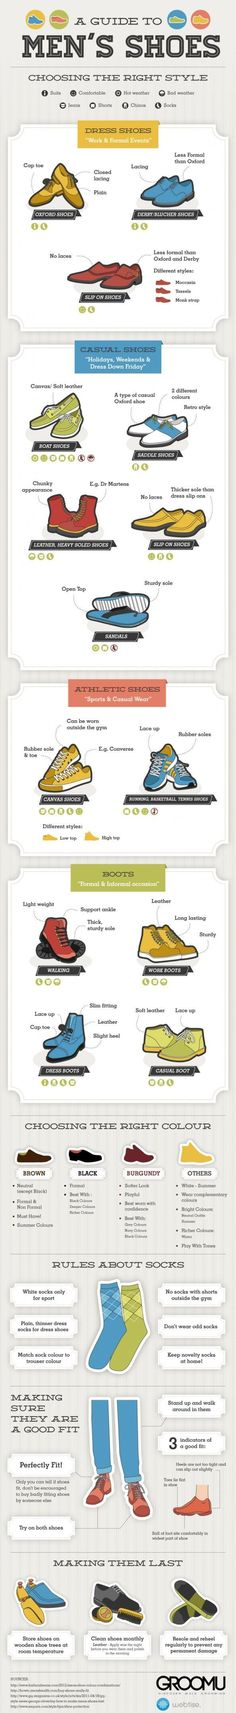 Guide to Men's Shoes.